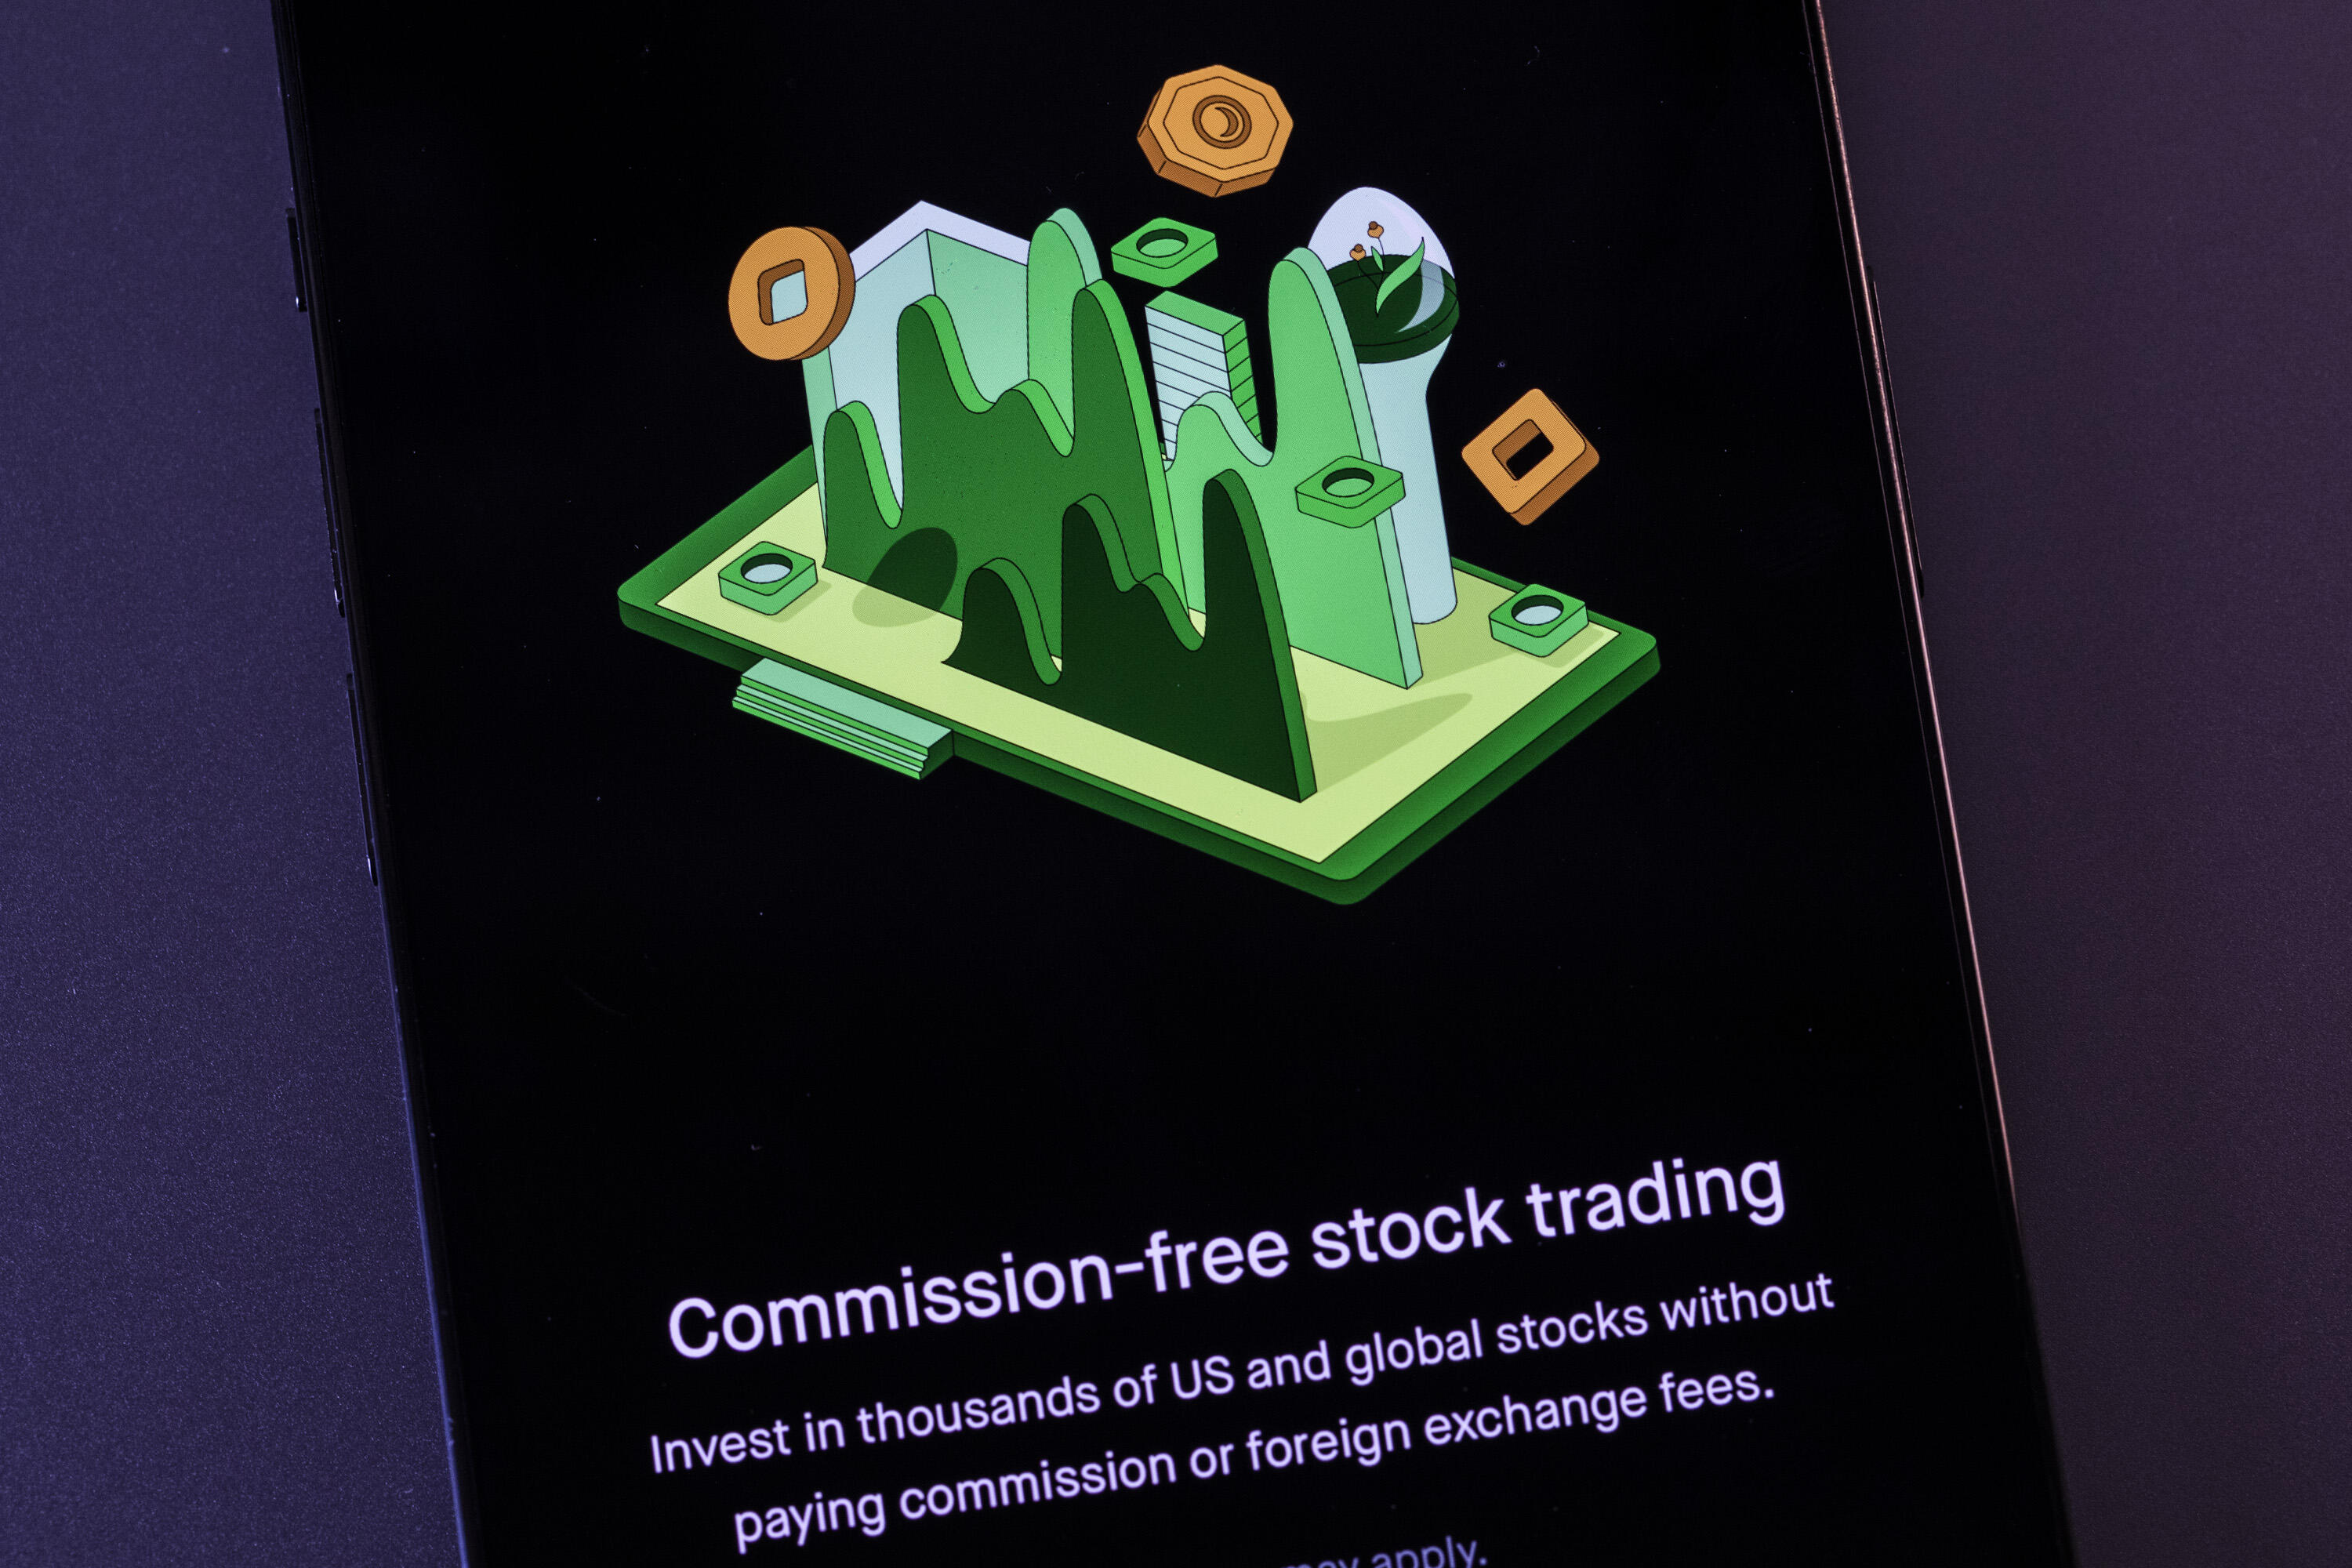 Robinhood stock trading